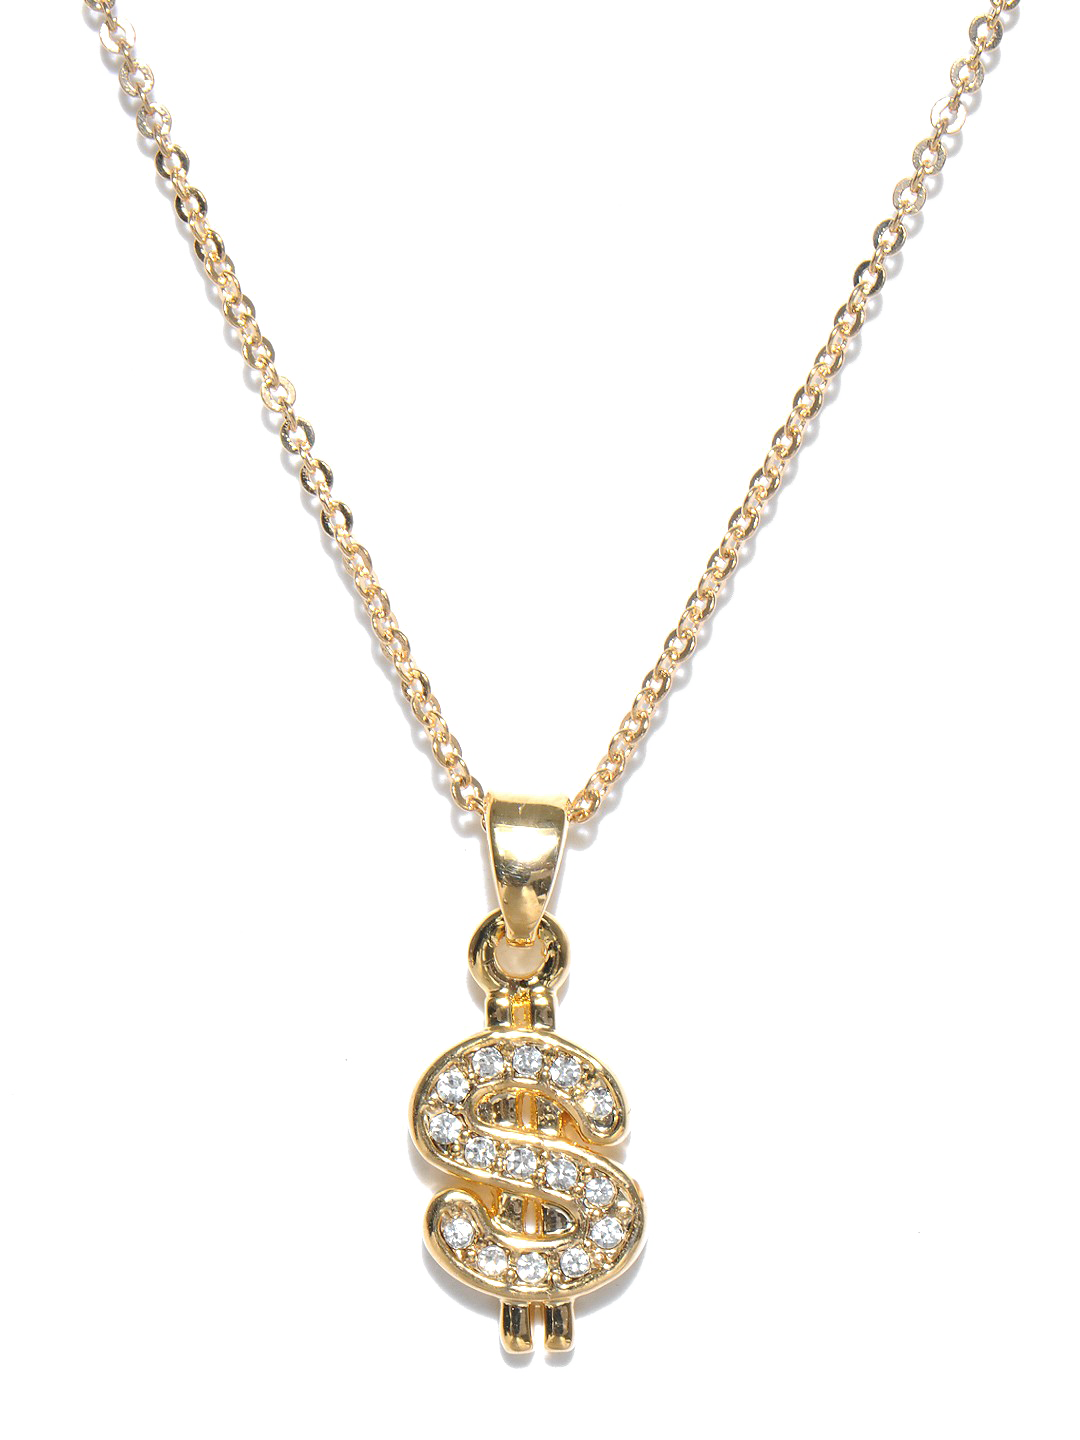 Dollar transparent gold chain. Thug life image png